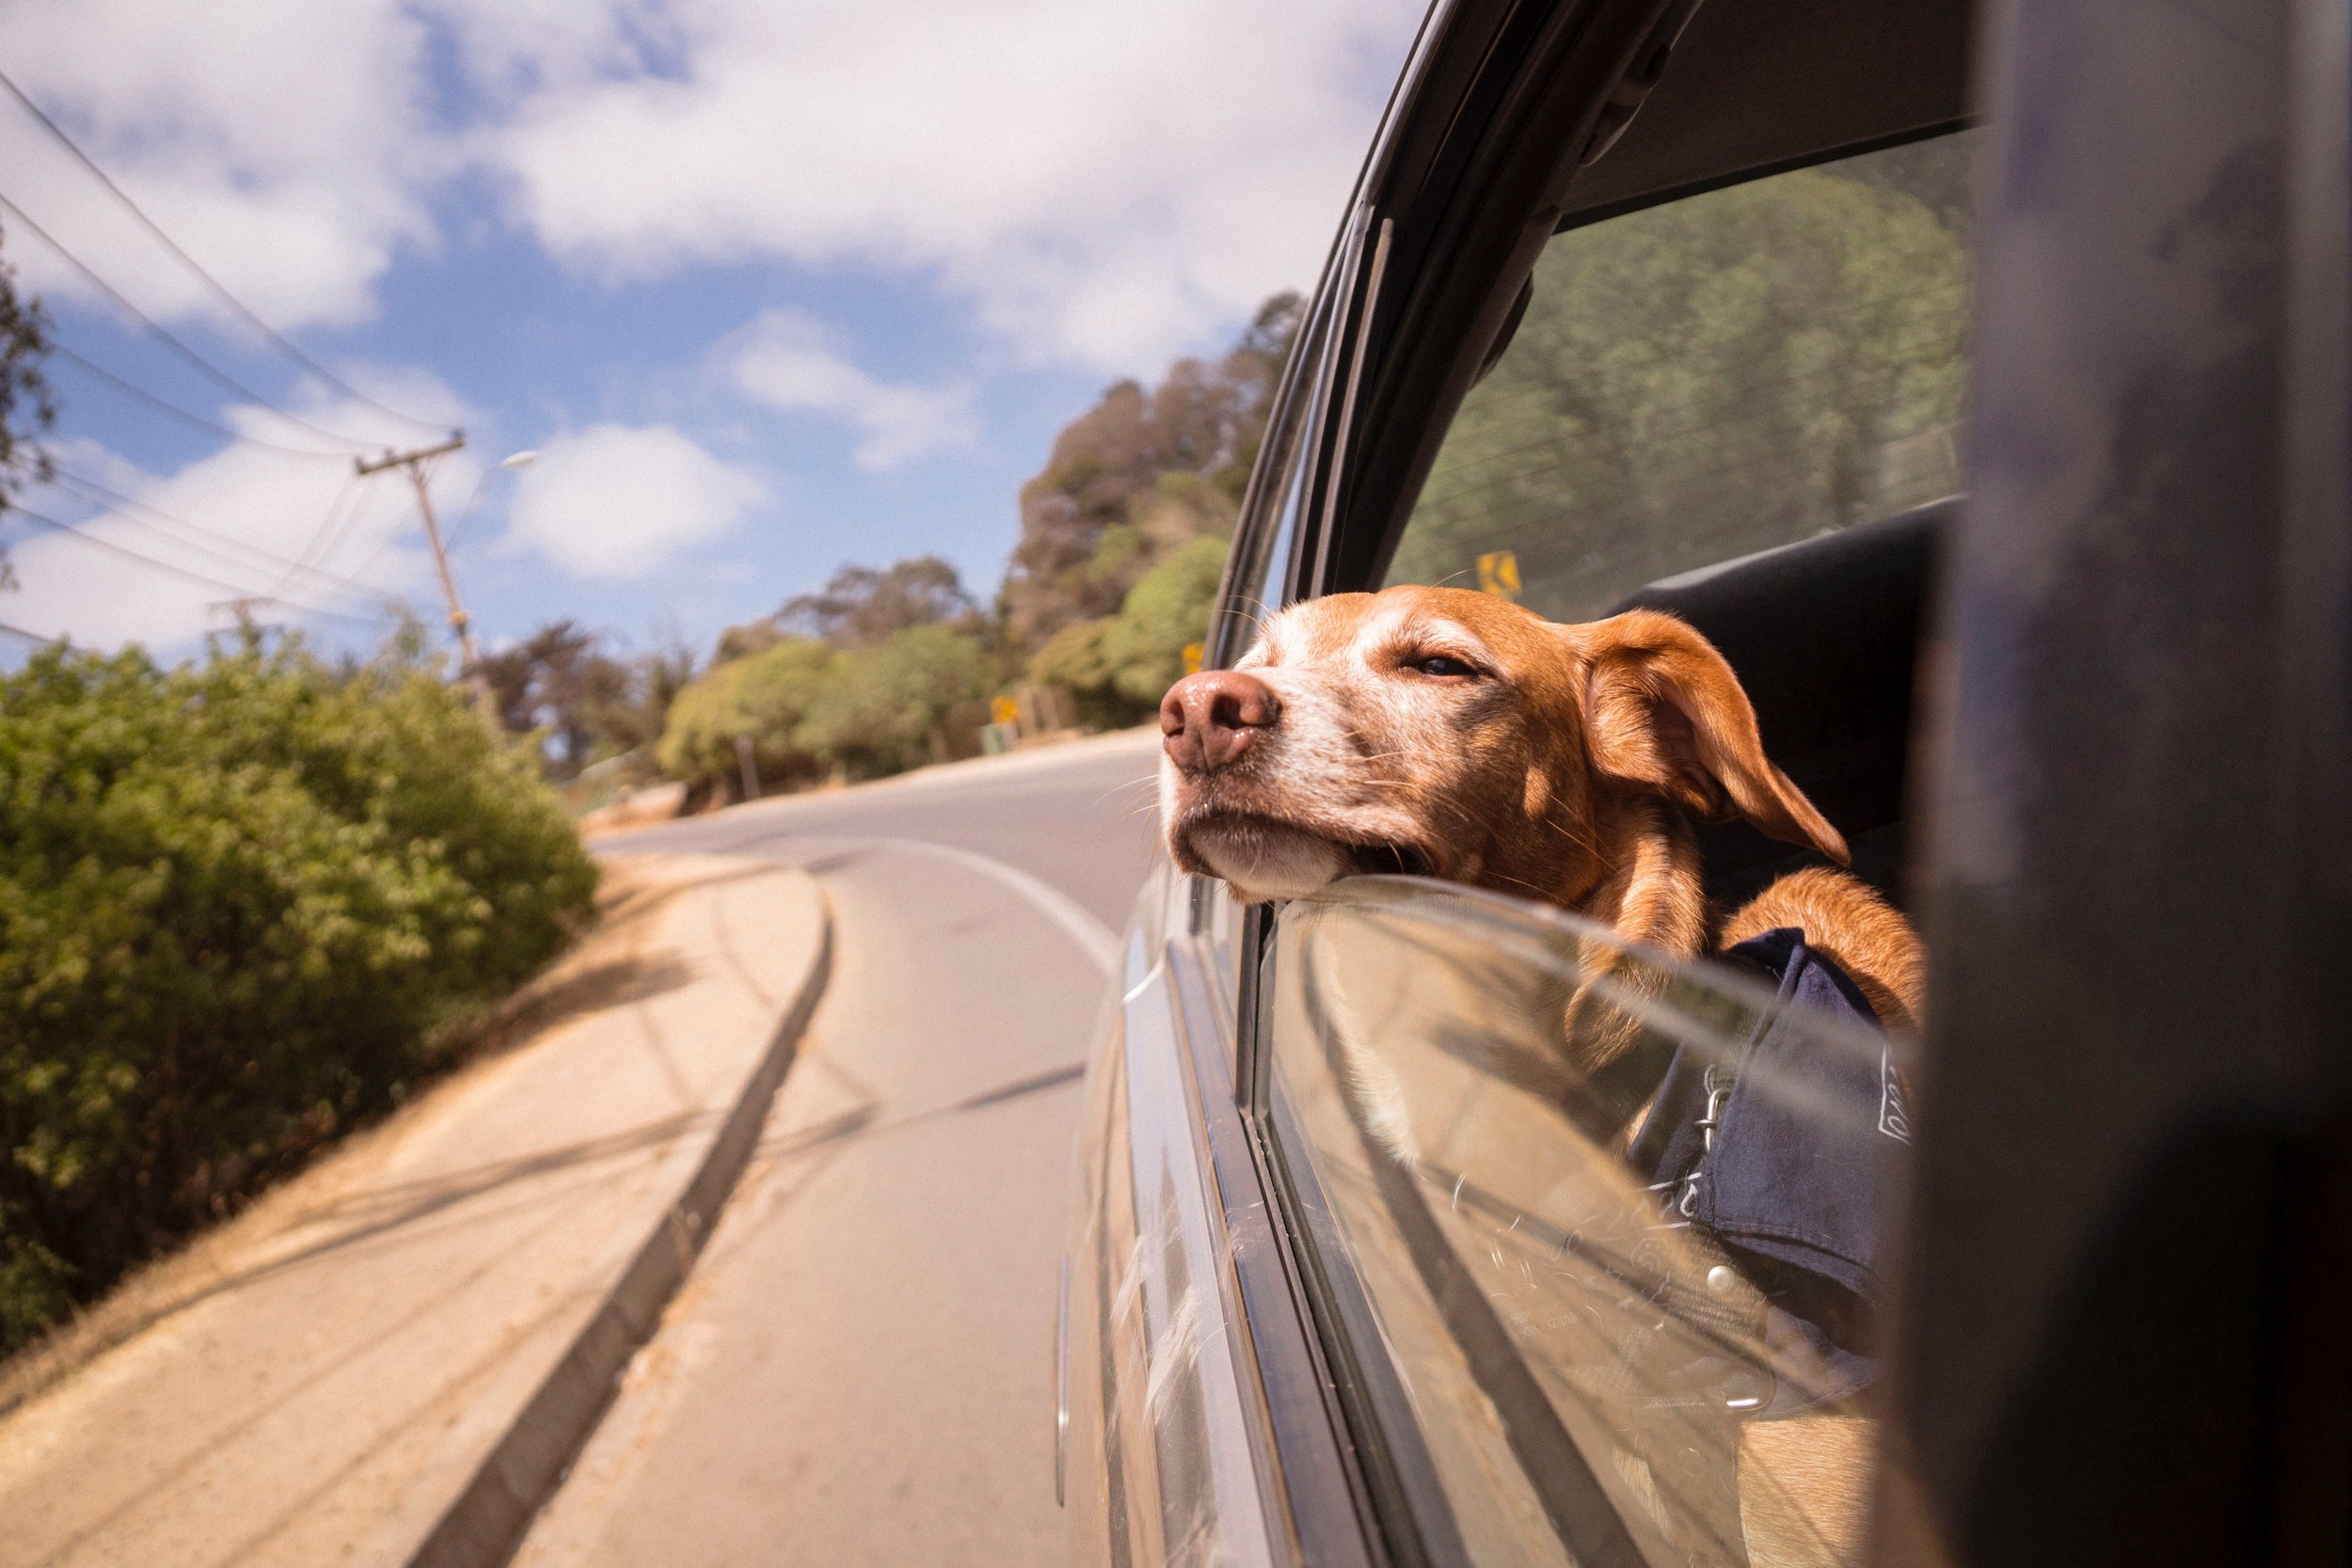 Dog lazily looking out a car window